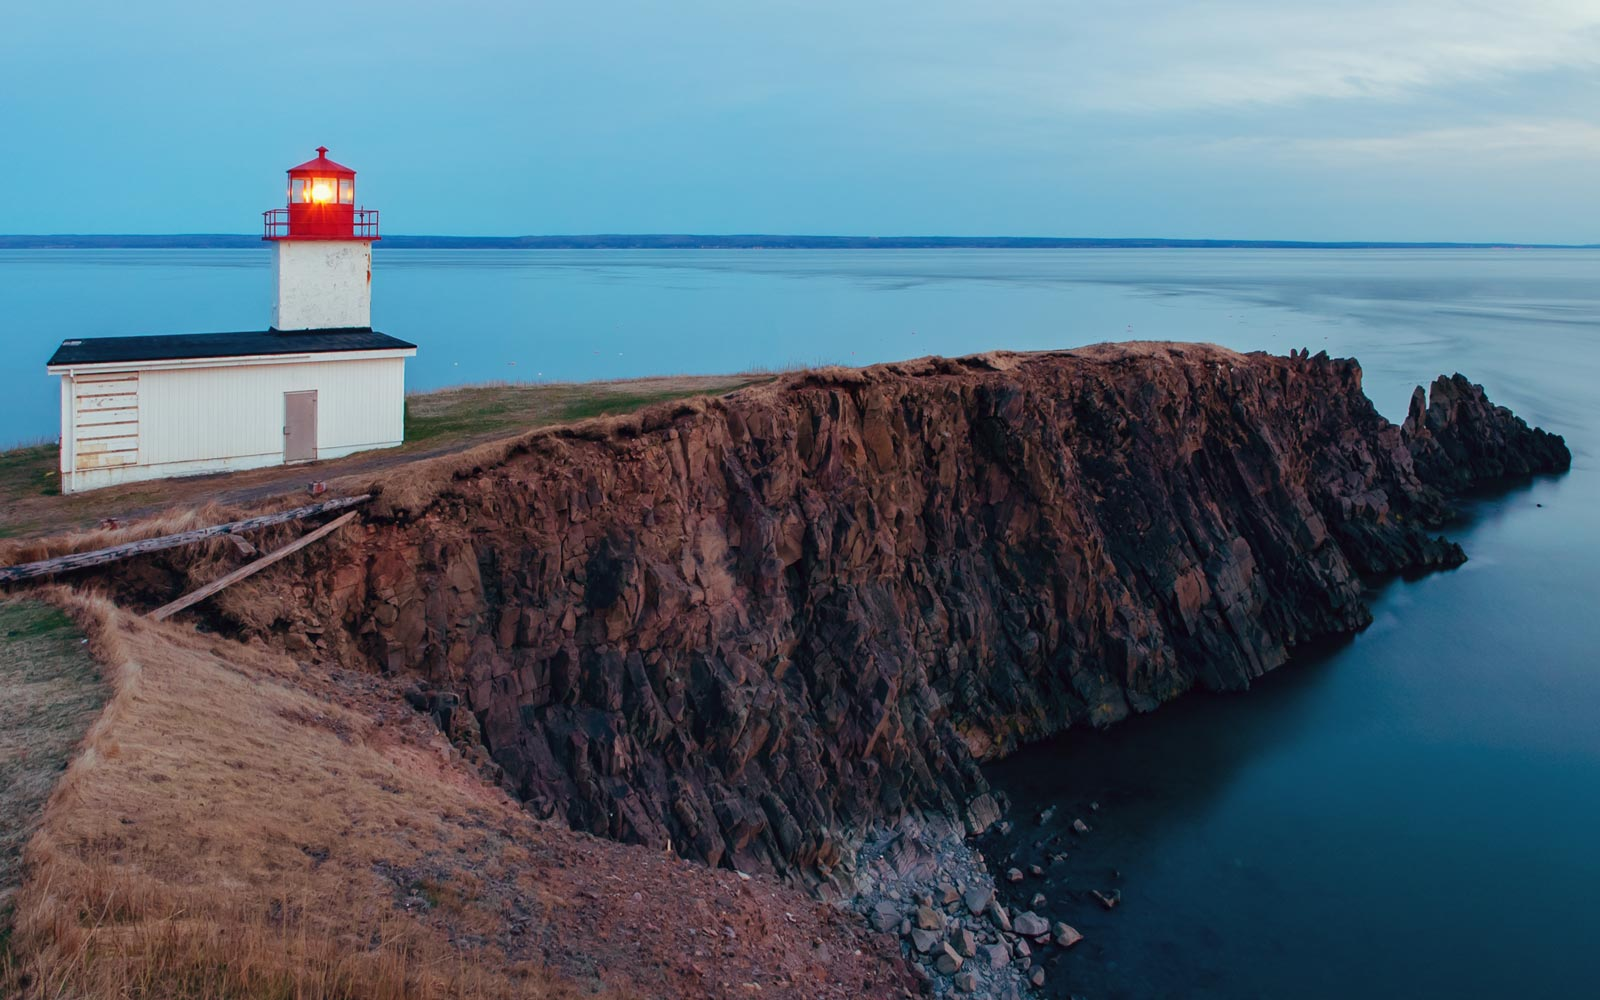 The Lighthouse on Cape d'Or, Canada